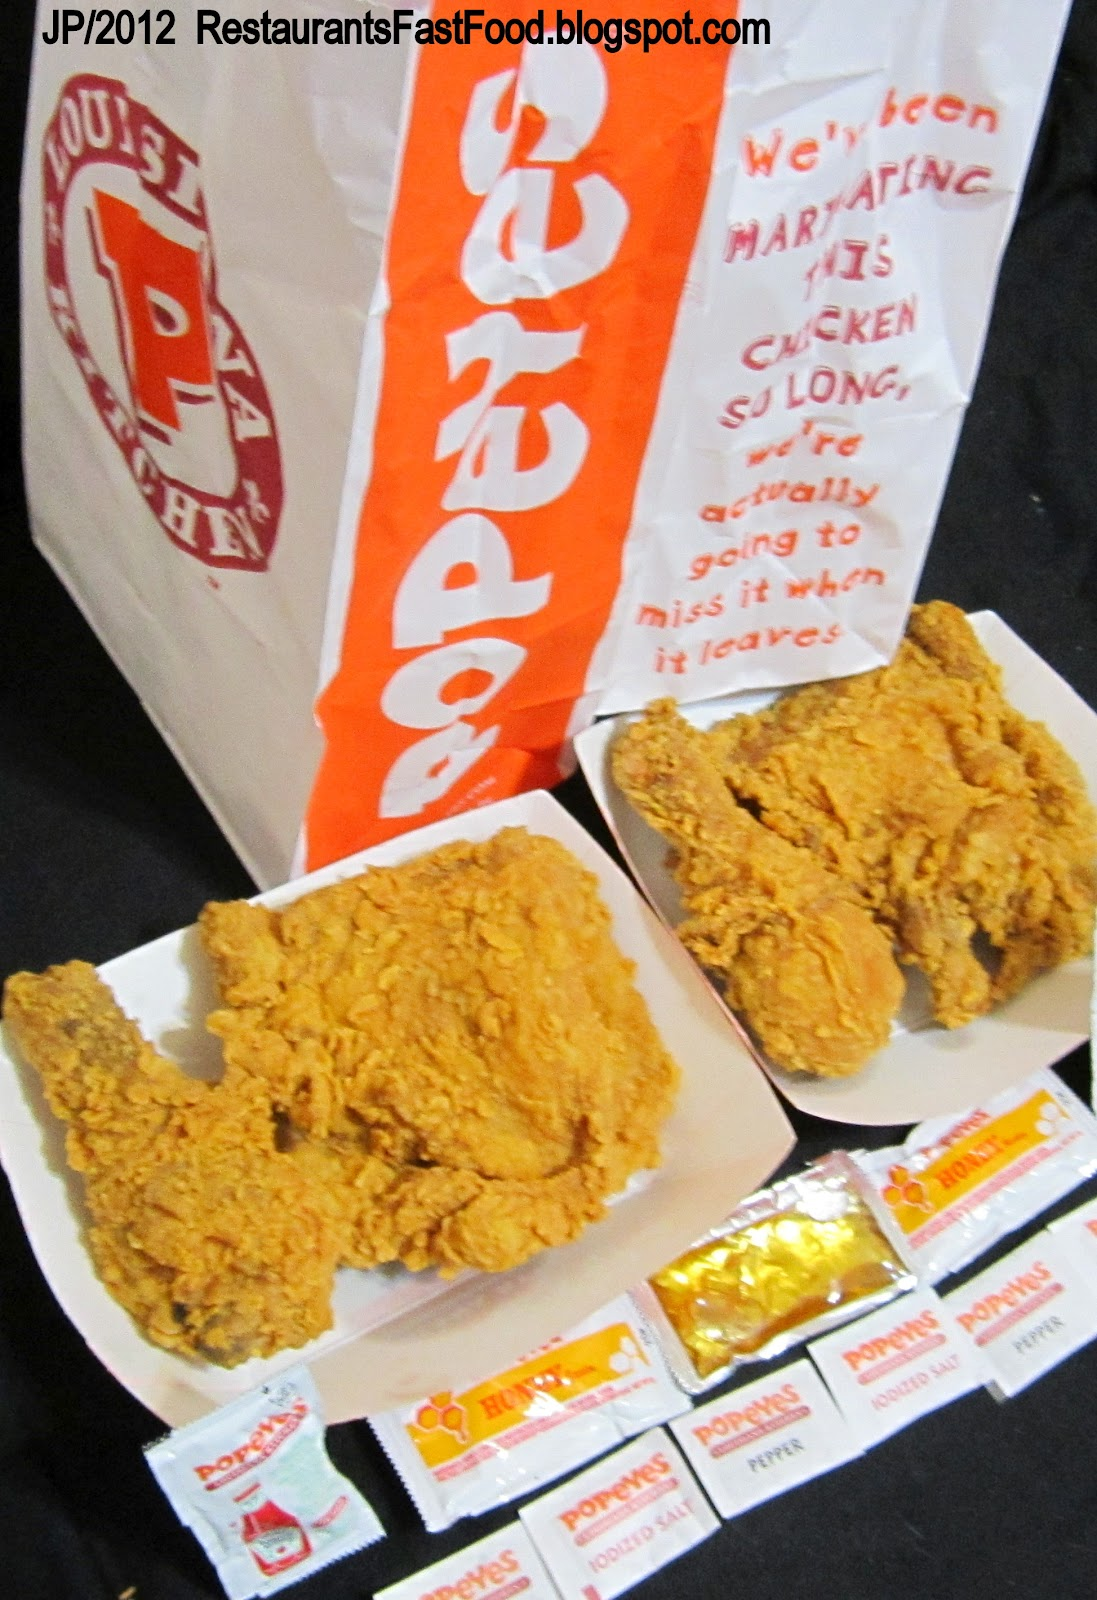 Popeyes Fried Chicken Menu http://restaurantsfastfood.blogspot.com/2010/10/popeyes-fried-chicken-biscuits-eatonton.html